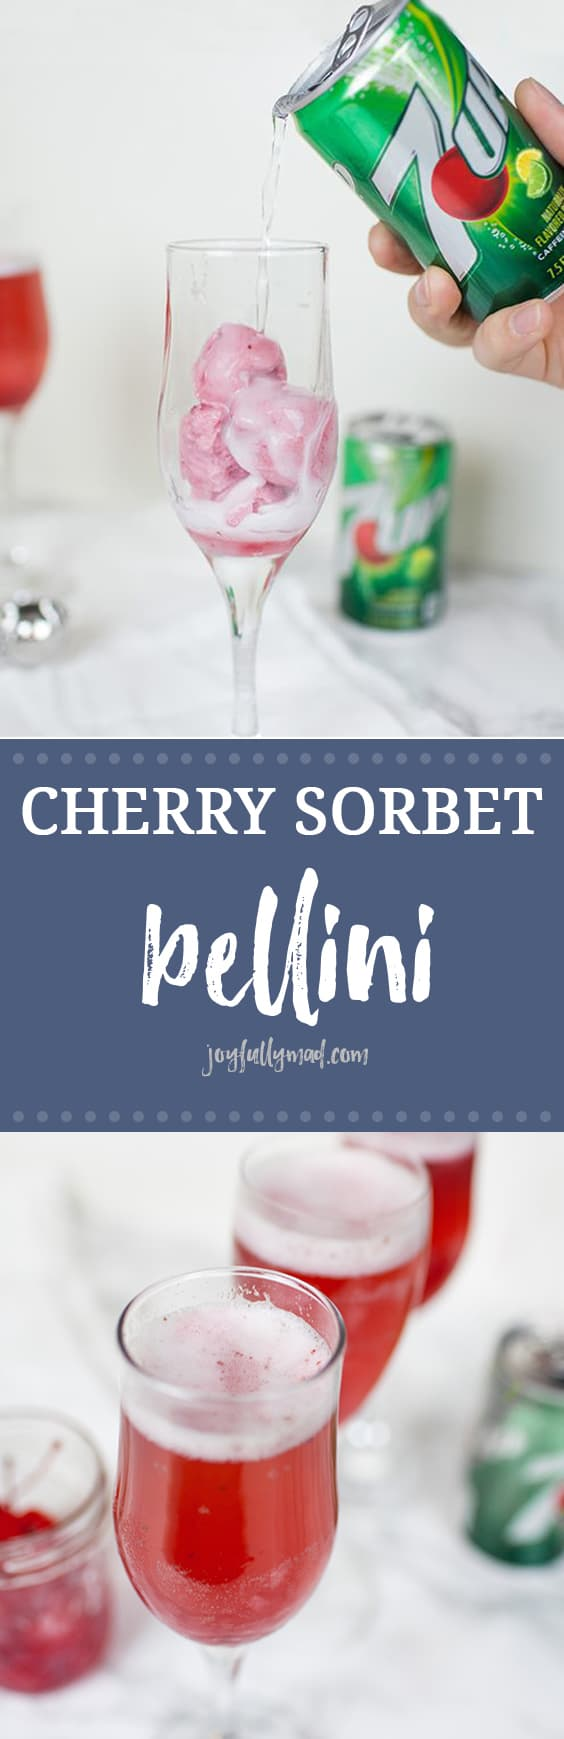 Cherry Sorbet Bellinis make the perfect easy party cocktail and punch idea for any party! Using 7UP®, champagne or prosecco, and black cherry sorbet, you can have a beautiful cocktail that's perfect for sharing! 7up | 7up cocktail | 7up drink | party drinks | party cocktails | shower drinks | proseco cocktails | champagne cocktails | baby shower punch recipe | bridal shower punch recipe | football drink recipes | valentine's day drink recipe